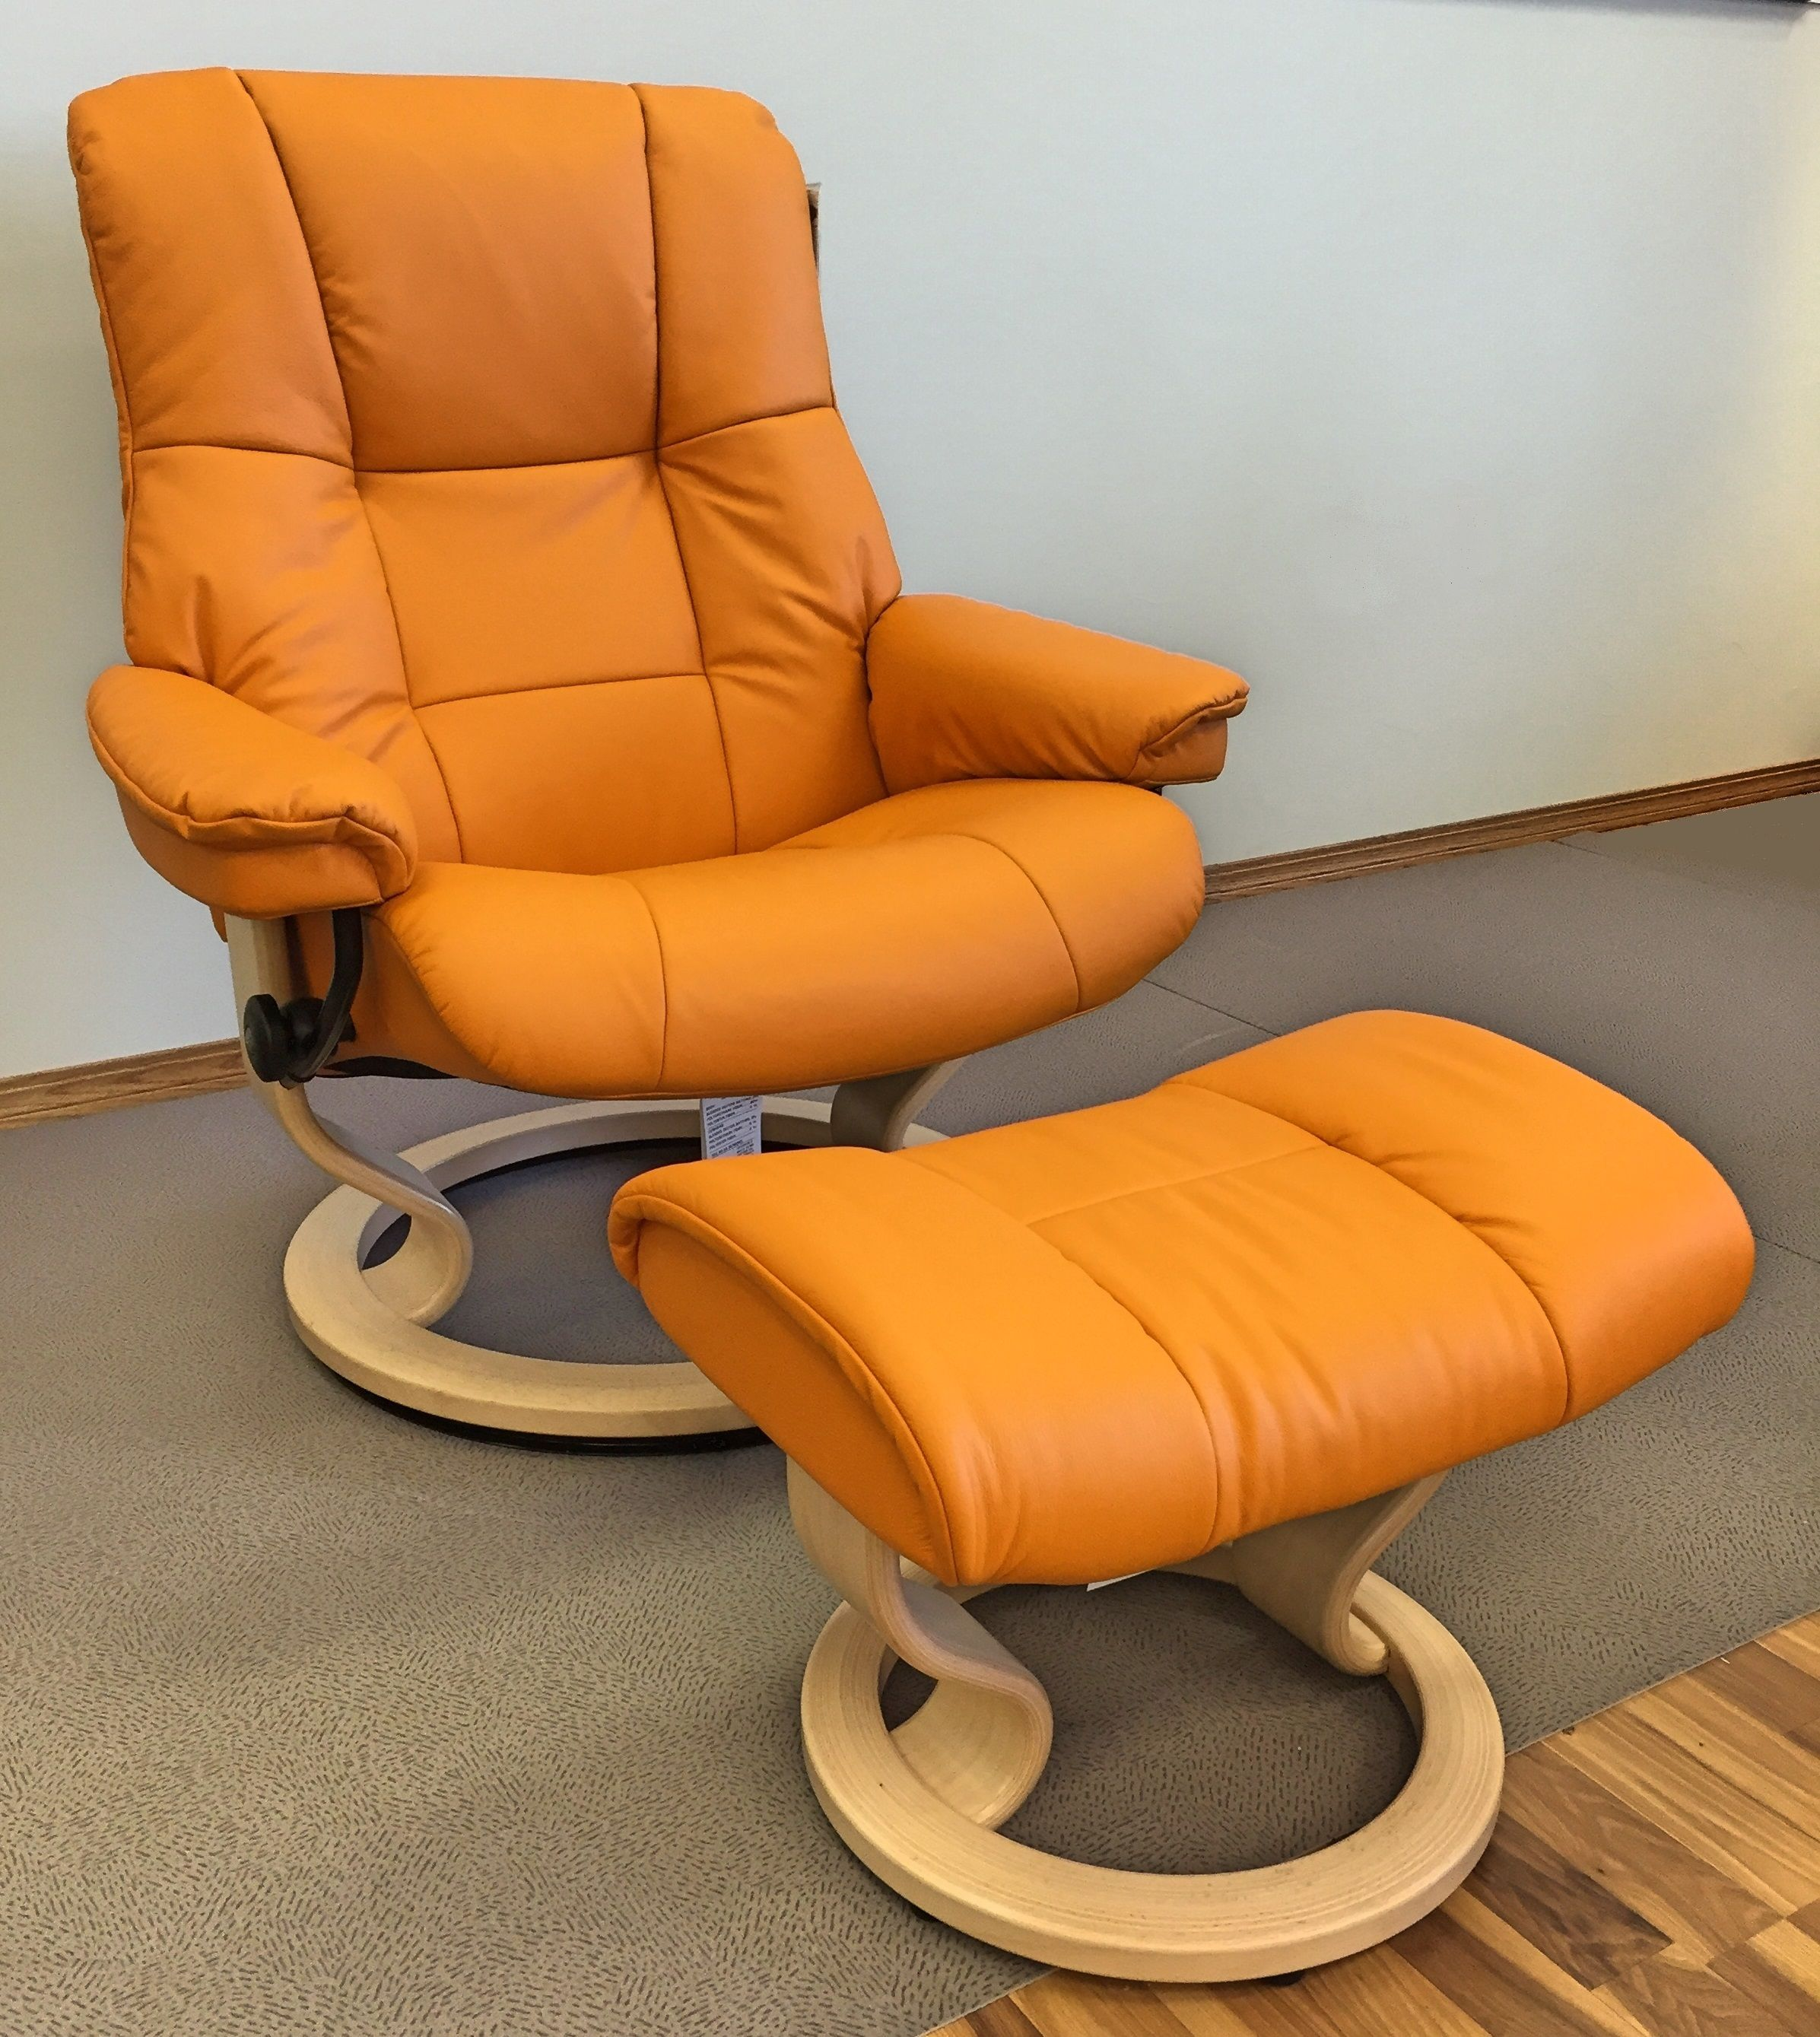 Ekornes Stressless Mayfair Large in Paloma Clementine with Natural base. Available at Scanhome Furnishings in Green Bay.